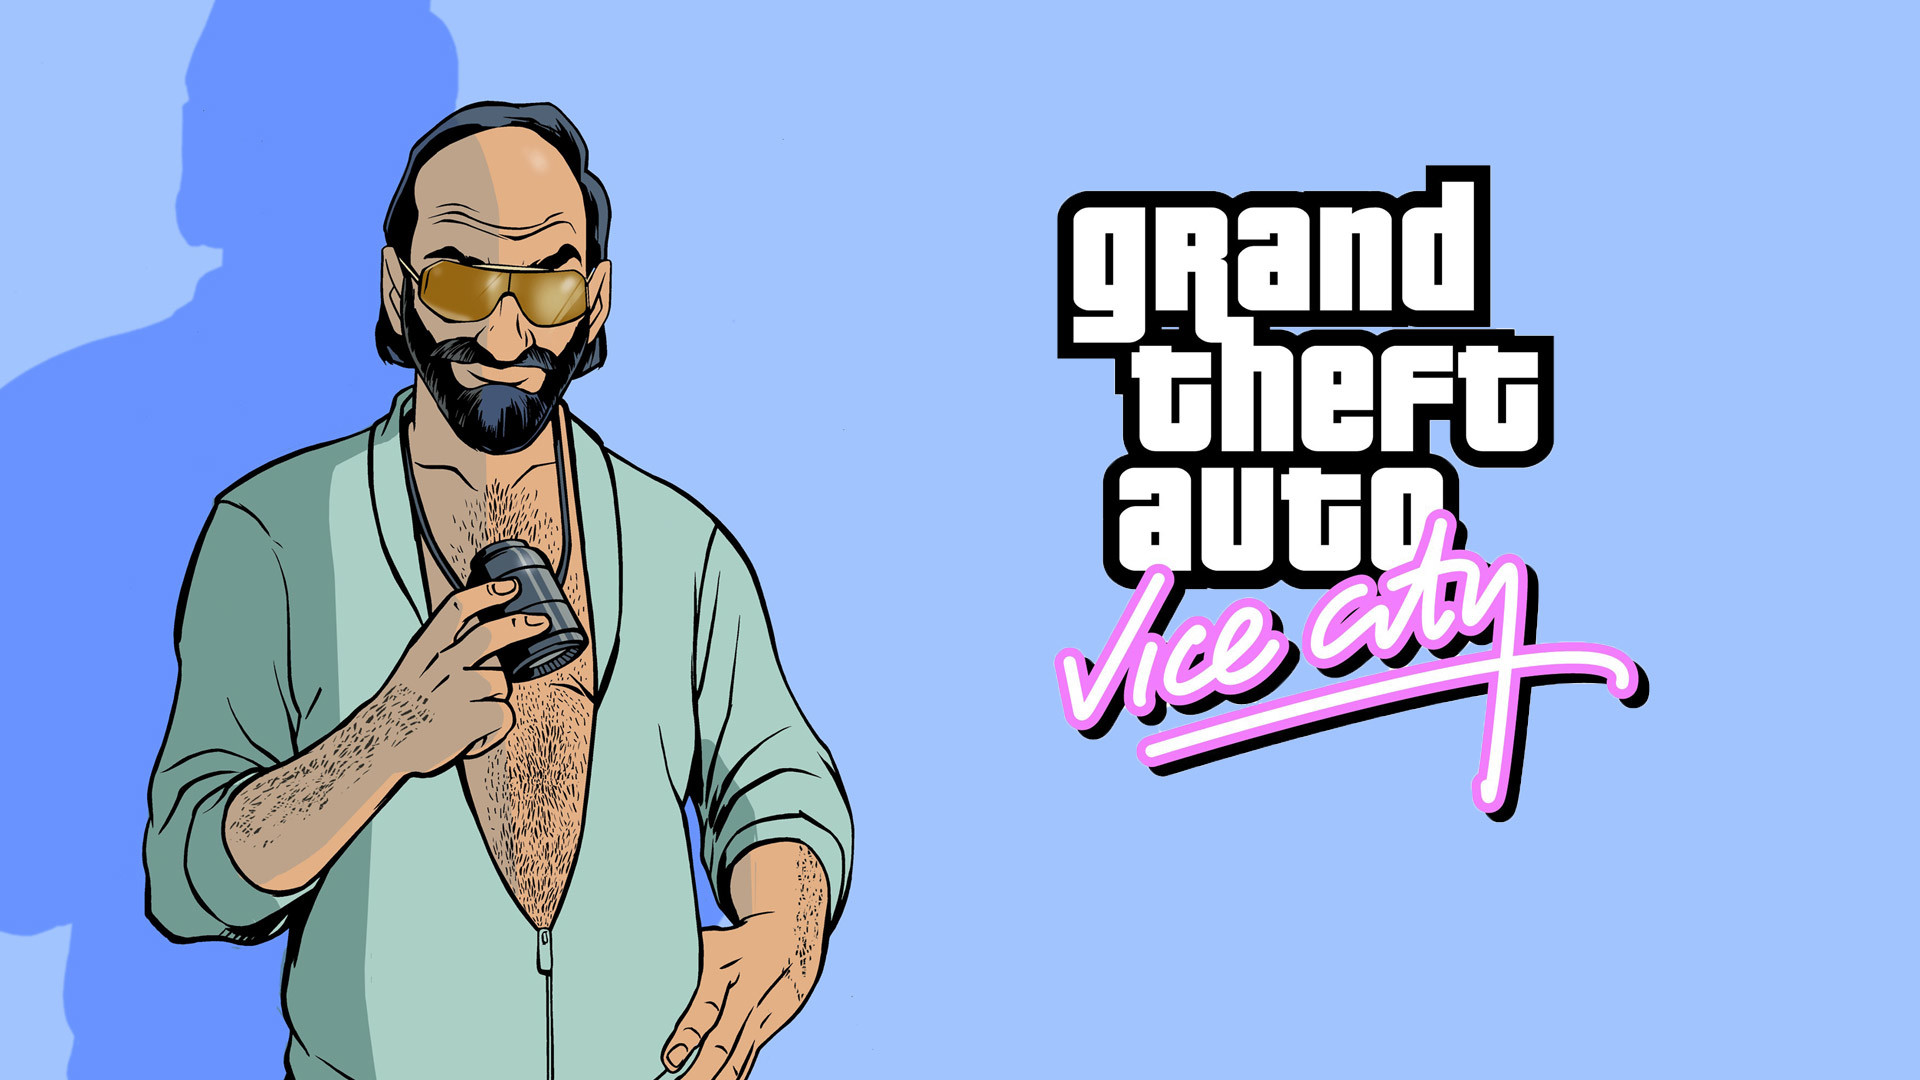 1920x1080 Free Grand Theft Auto: Vice City Wallpaper in